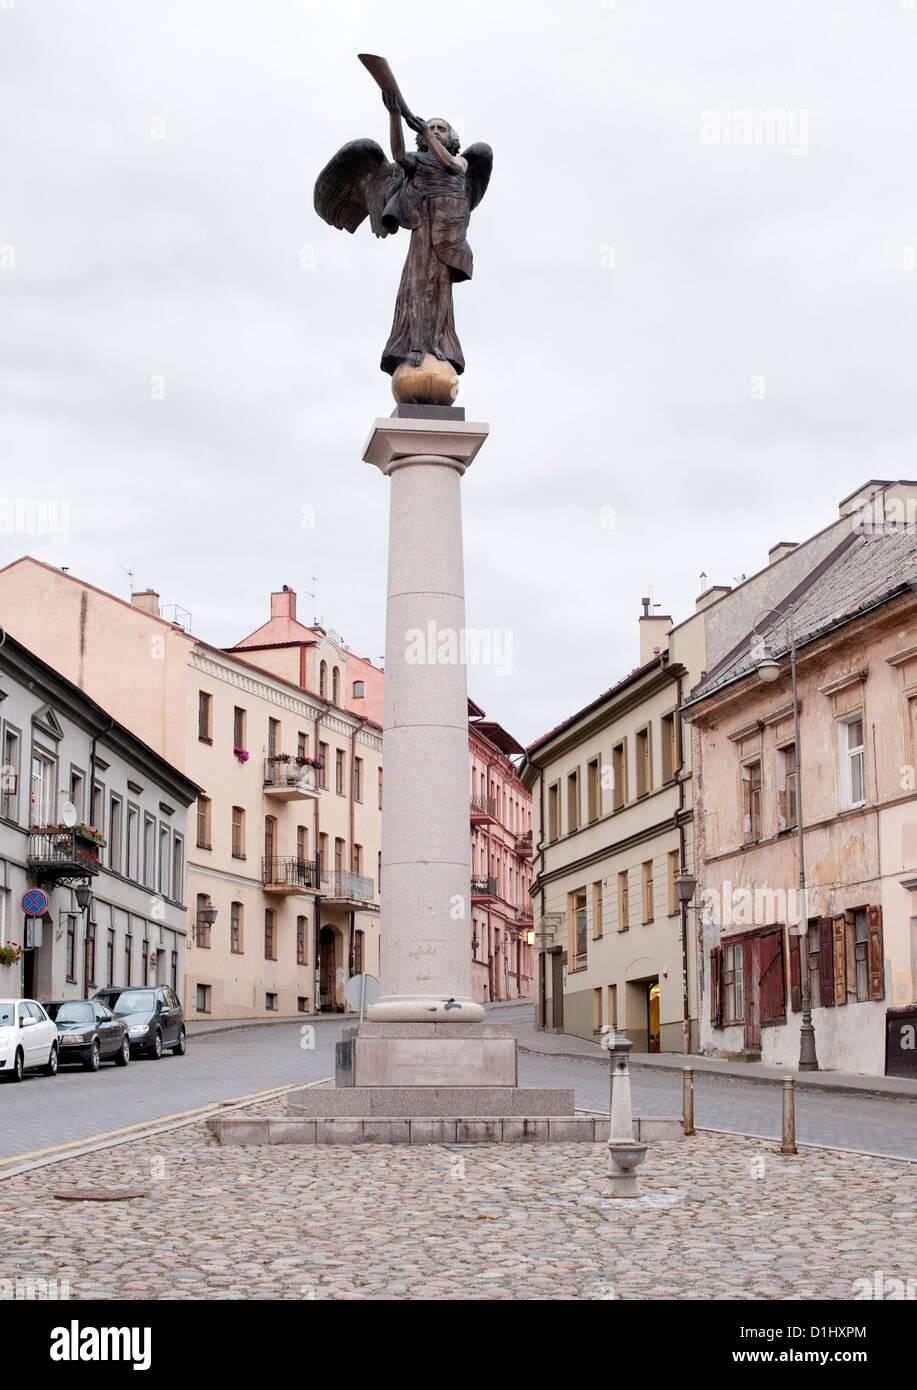 The Angel of Uzupis in the Uzupis district of Vilnius, the capital of Lithuania. - Stock Image